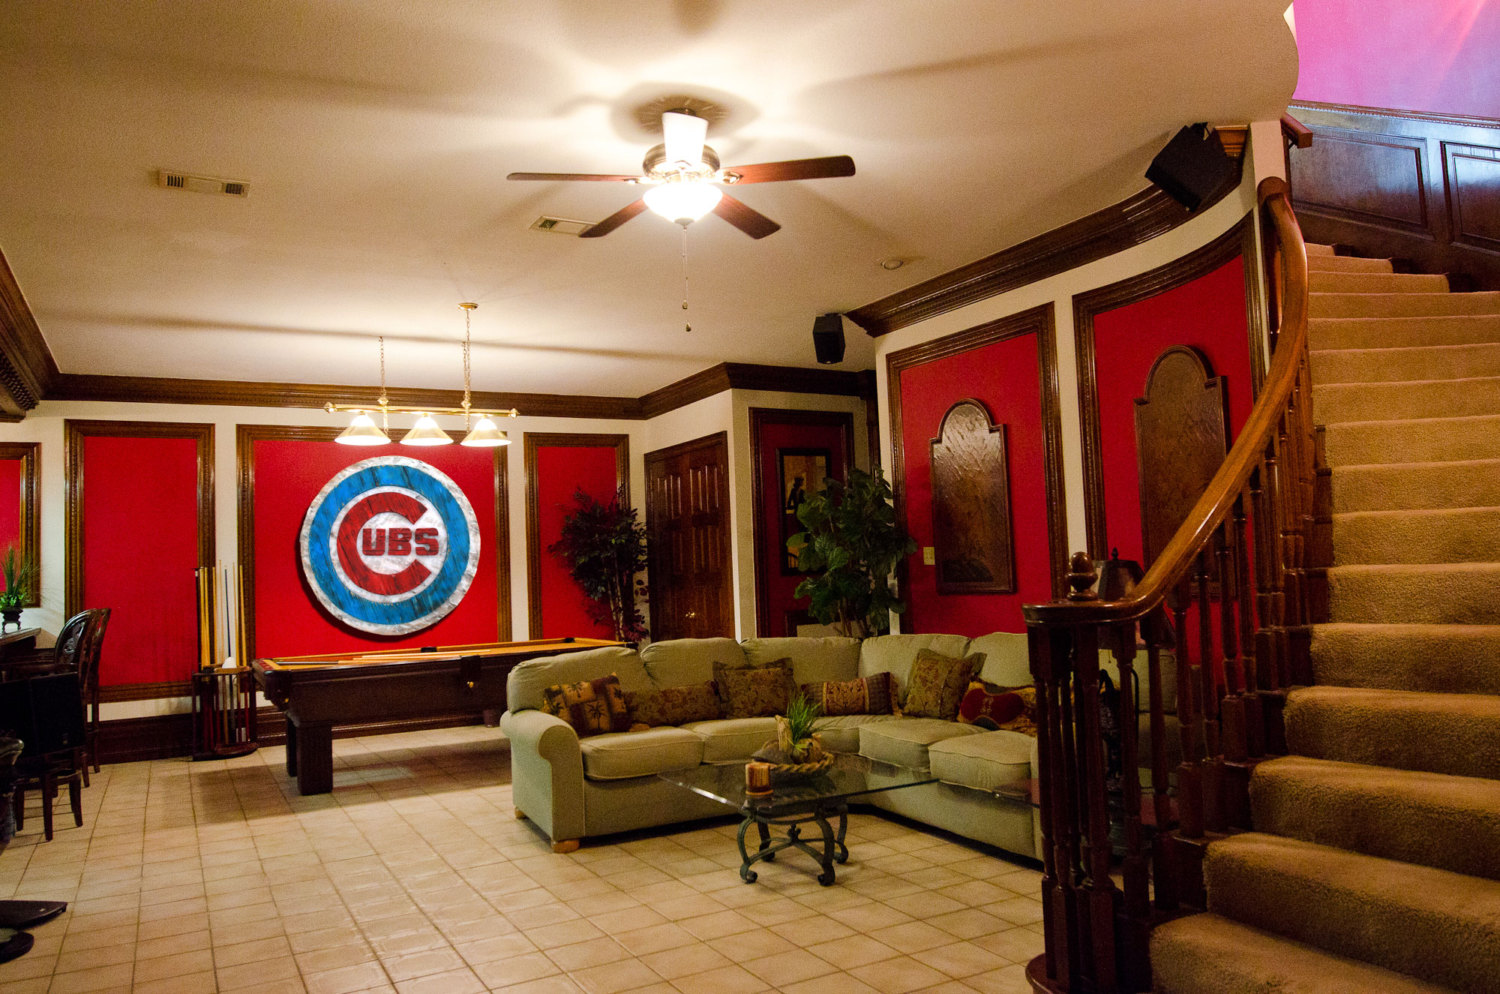 Man Cave Wall Decor : Chicago cubs handmade distressed wood sign vintage art